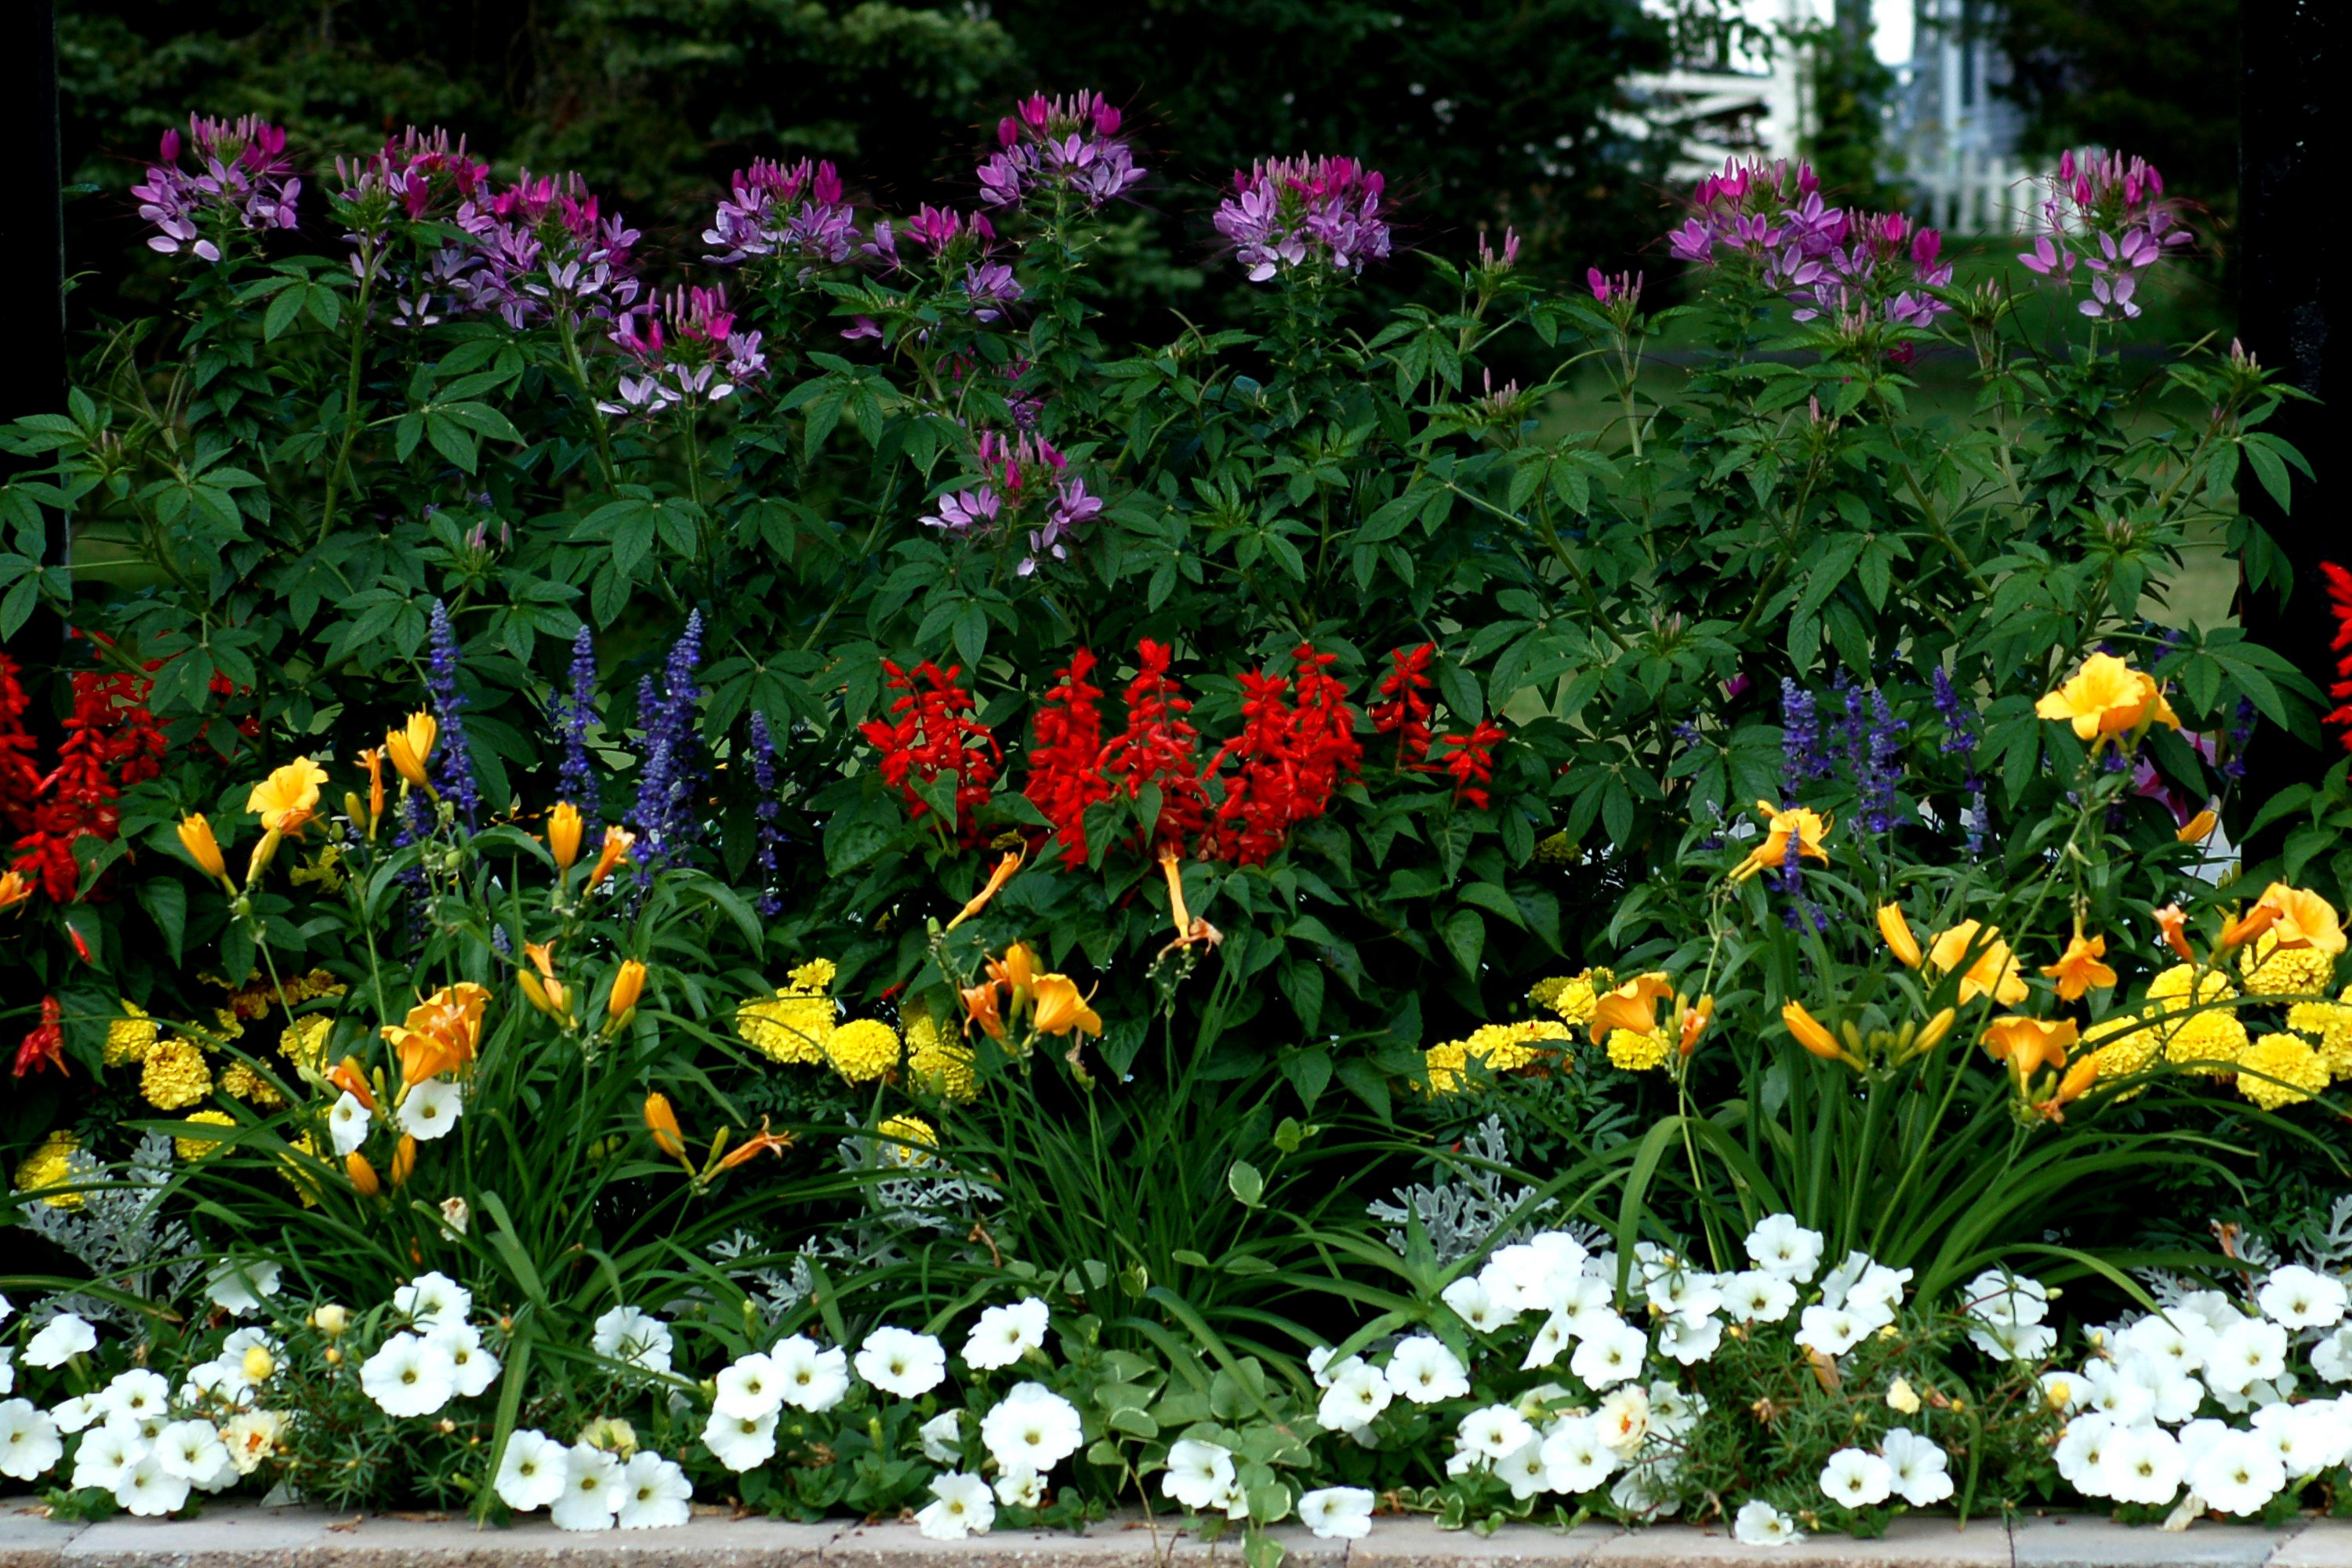 Layered flower borders look neater. Plus the tall plants don't shade the small ones.